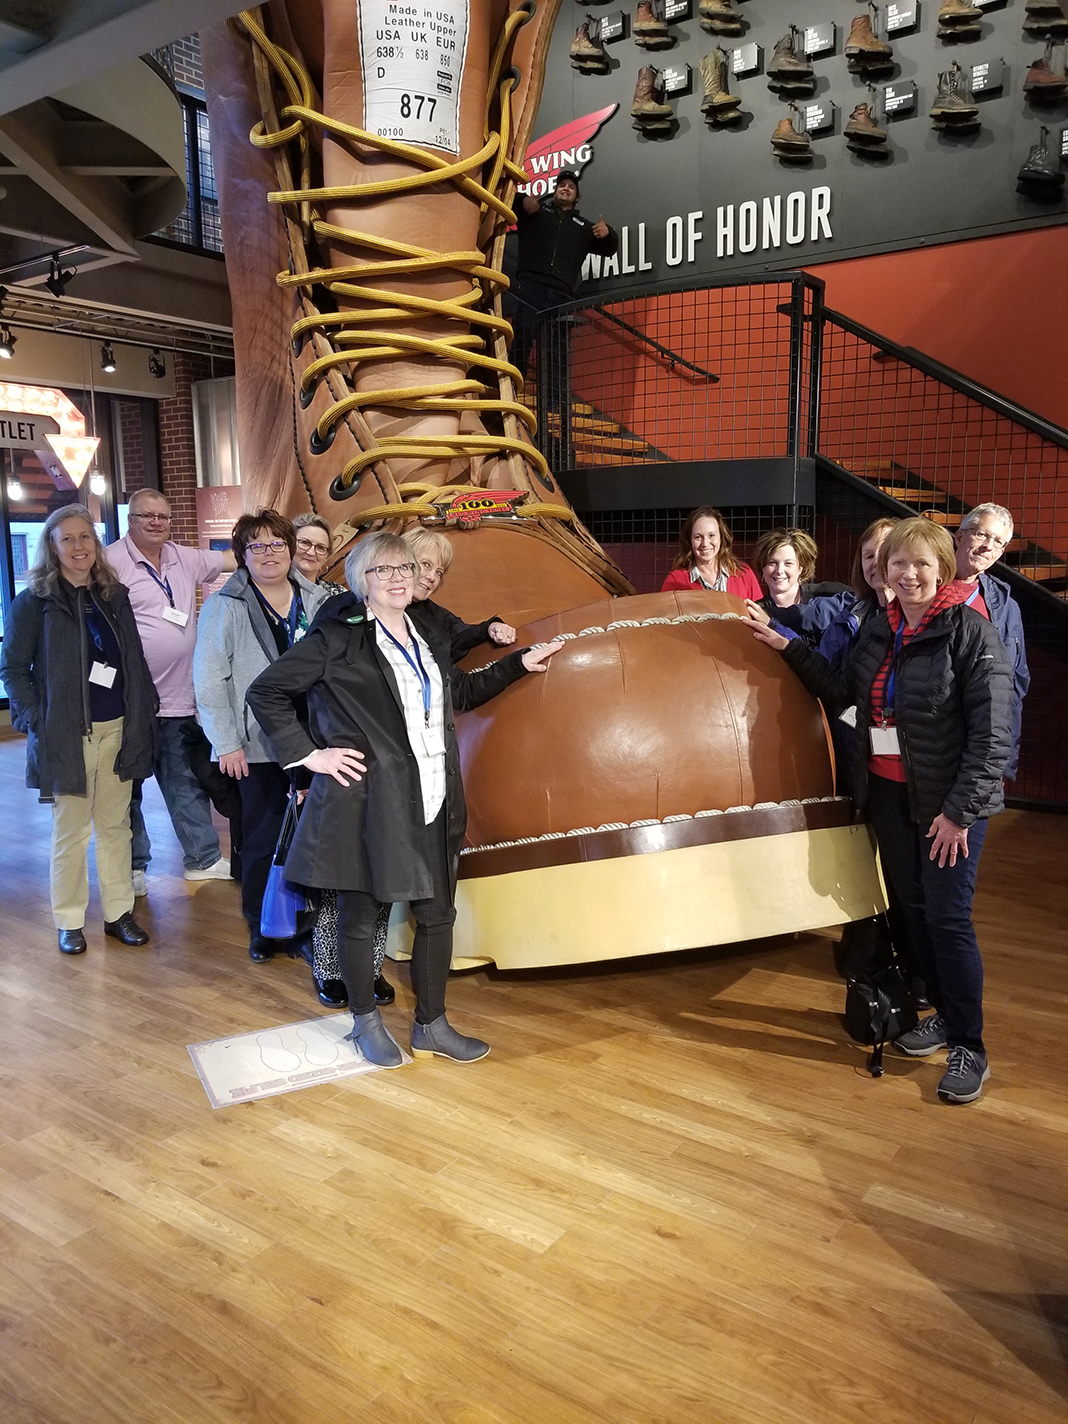 A group of tourists posing for a photo in front of the World's Largest Boot at The Red Wing Shoe Museum.